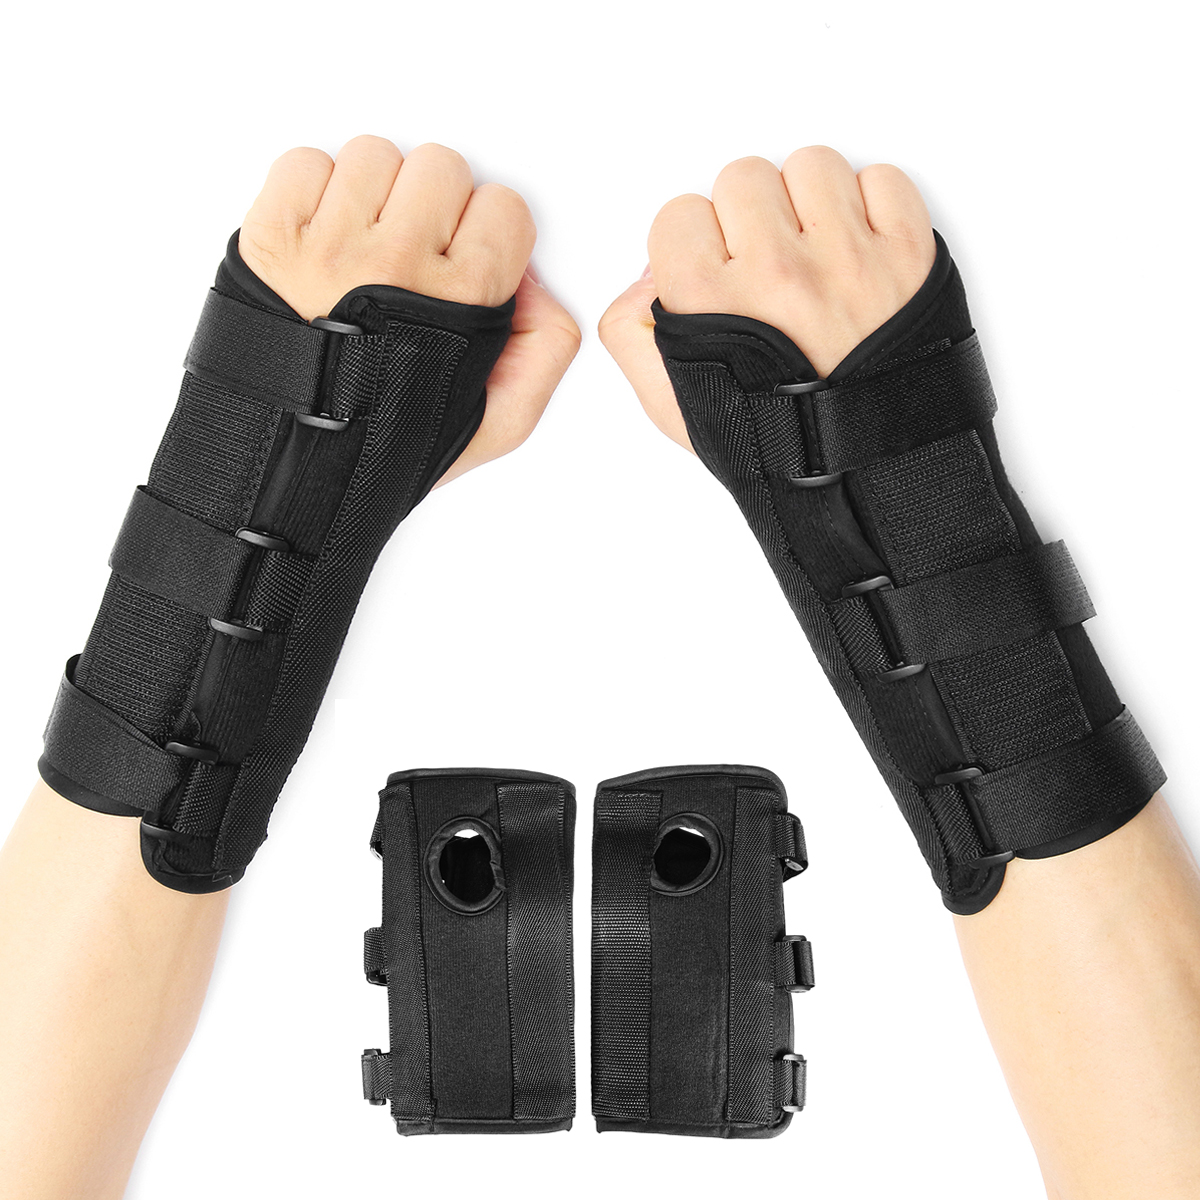 1Pair Breathable Medical Carpal Tunnel Wrist Brace Right and Left Hands Splint Support